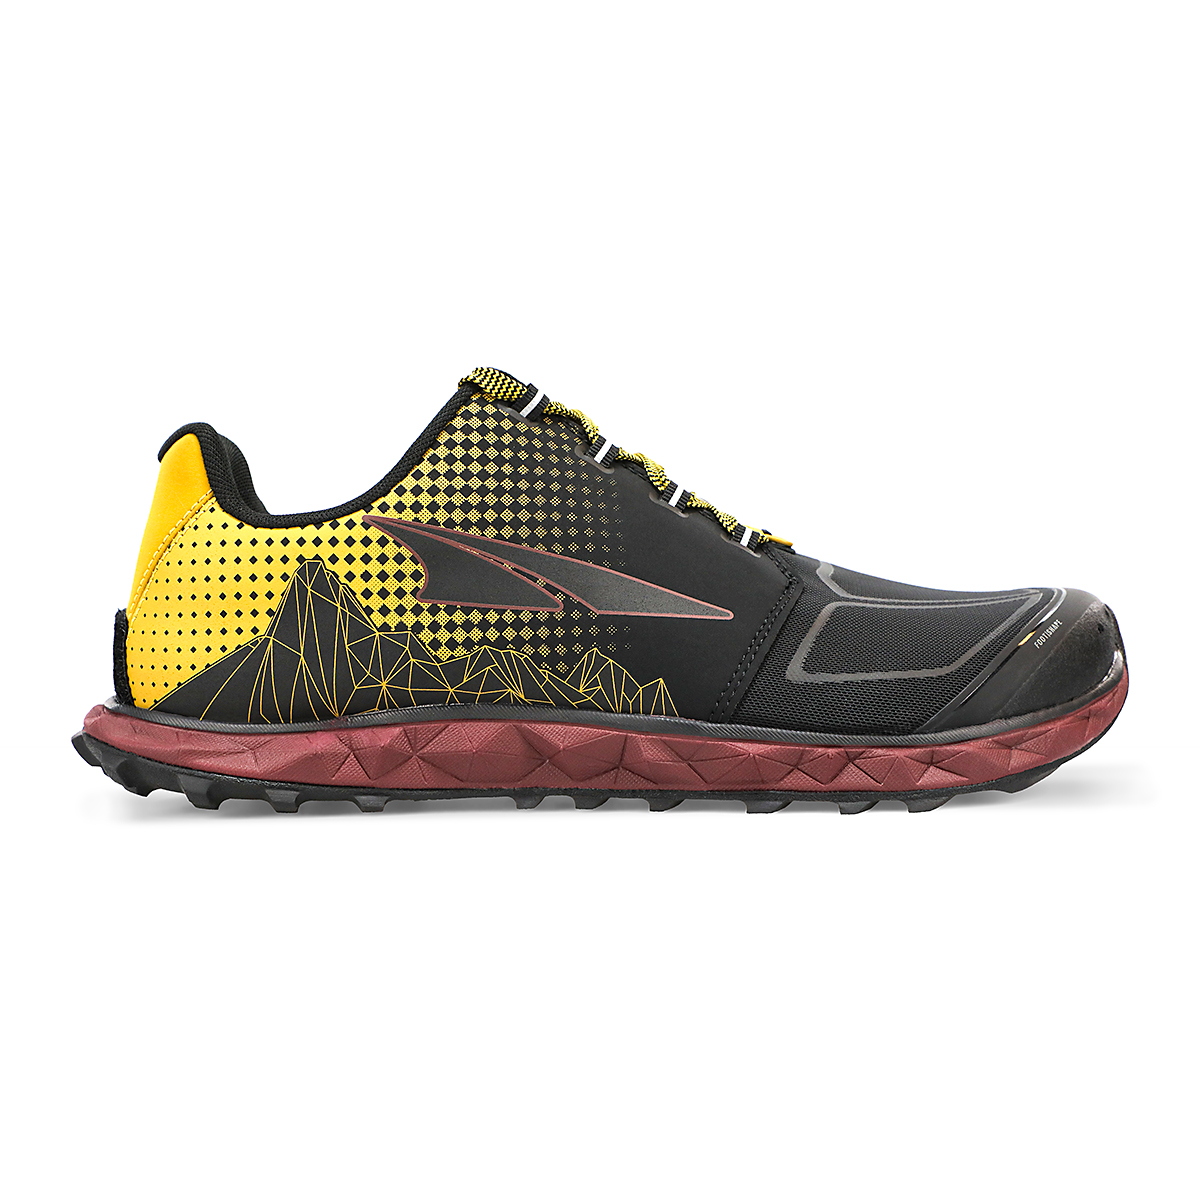 Men's Altra Superior 4.5 Trail Running Shoe - Color: Yellow/Port - Size: 7 - Width: Regular, Yellow/Port, large, image 1